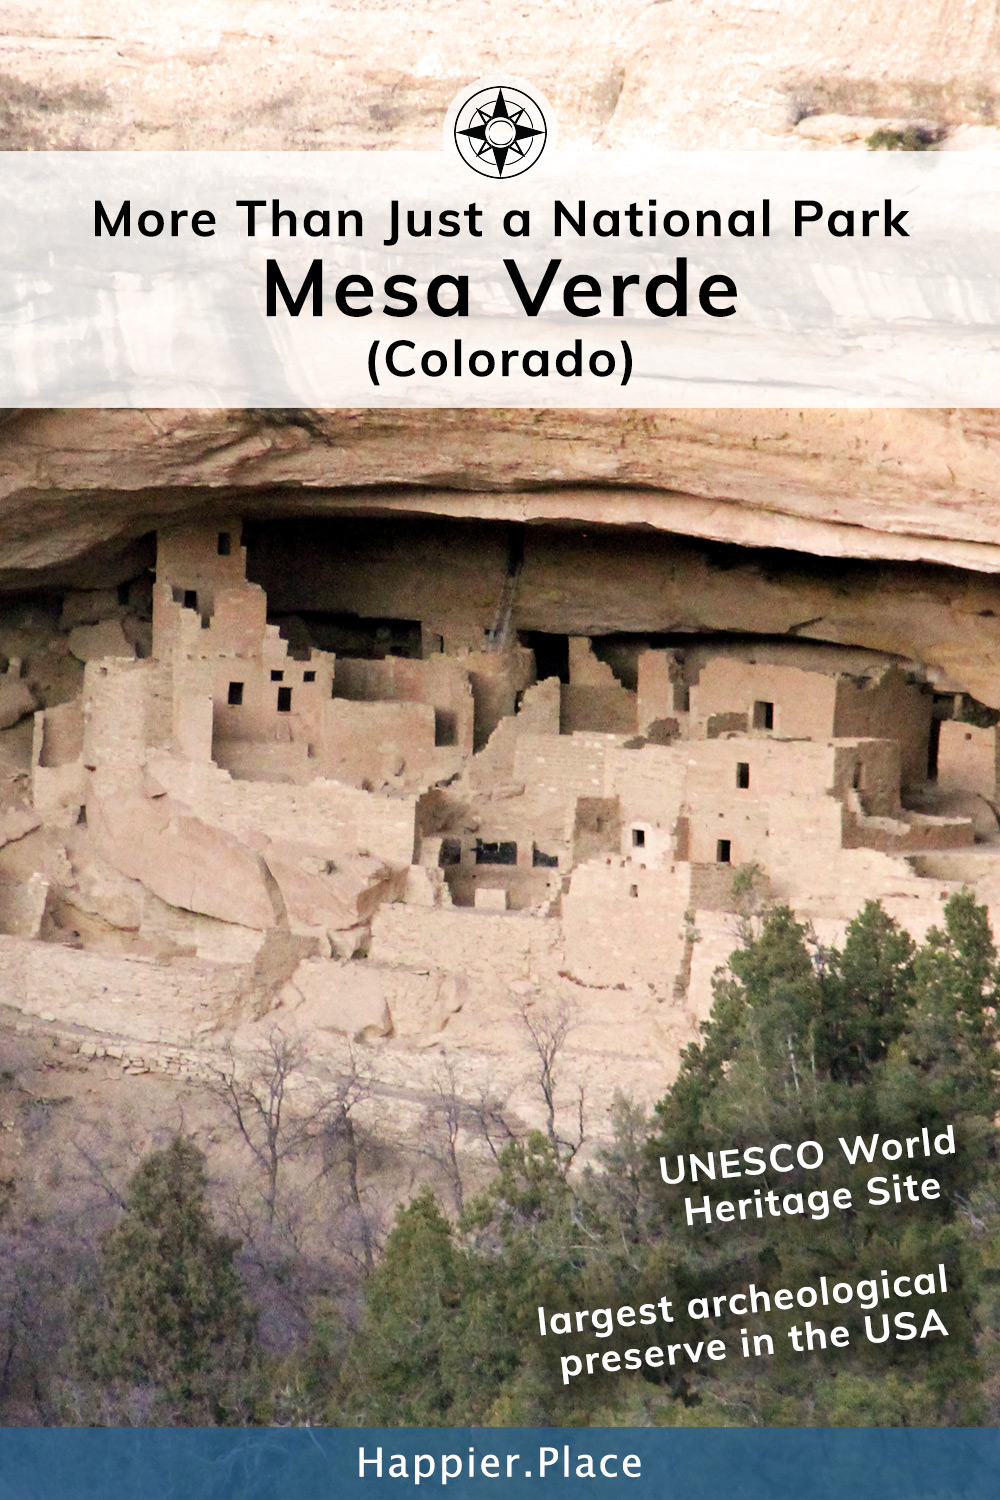 Much More Than Just a National Park: Mesa Verde in Colorado). It's an UNESCO World Heritage site and the  largest archeological site in the USA.